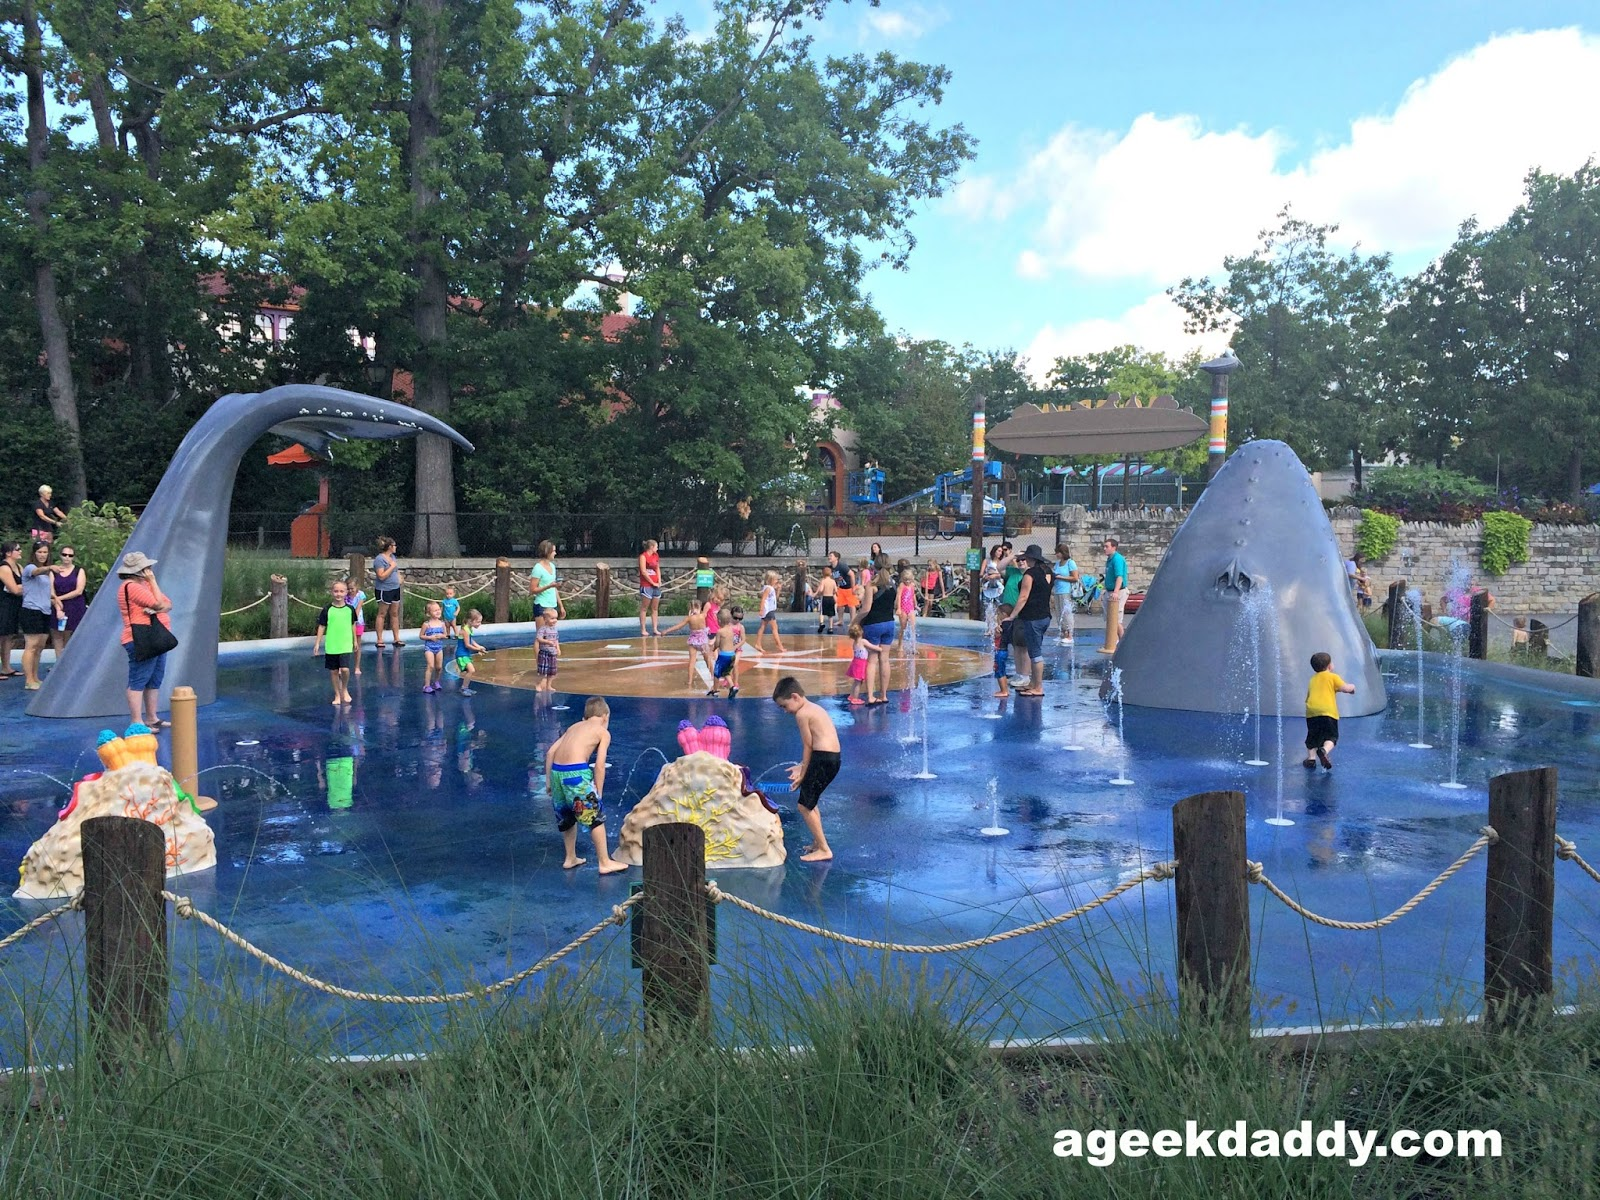 A GEEK DADDY: Toledo Zoo named BEST ZOO in the United States